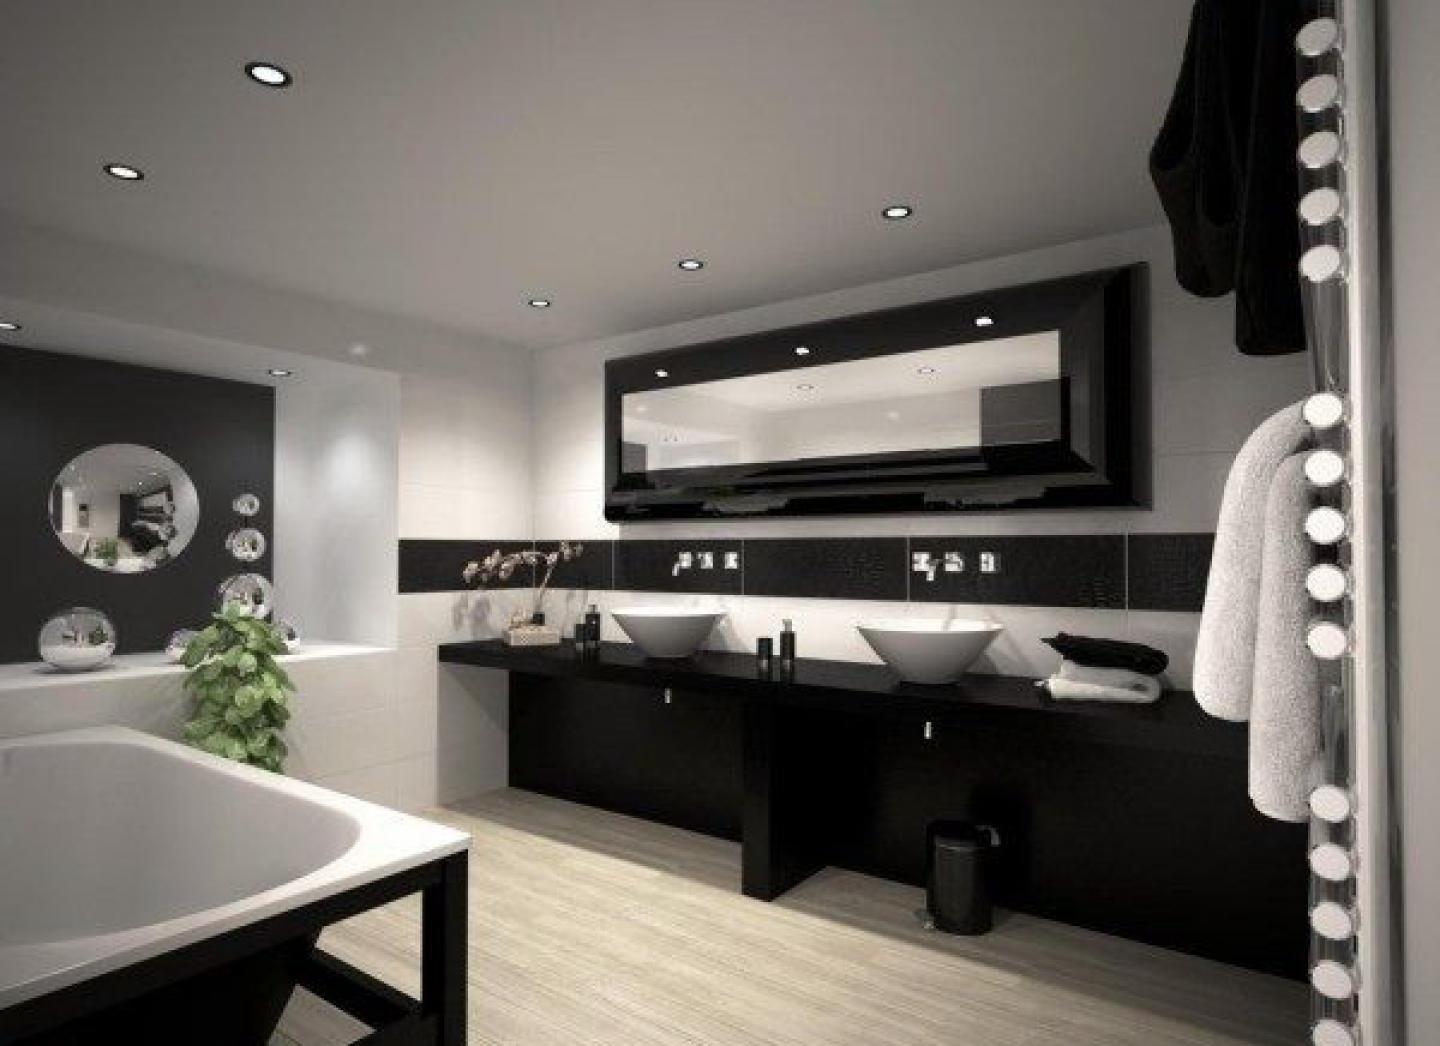 photo gallery of the master bathroom interior design ideas - Bathroom Interior Design Ideas